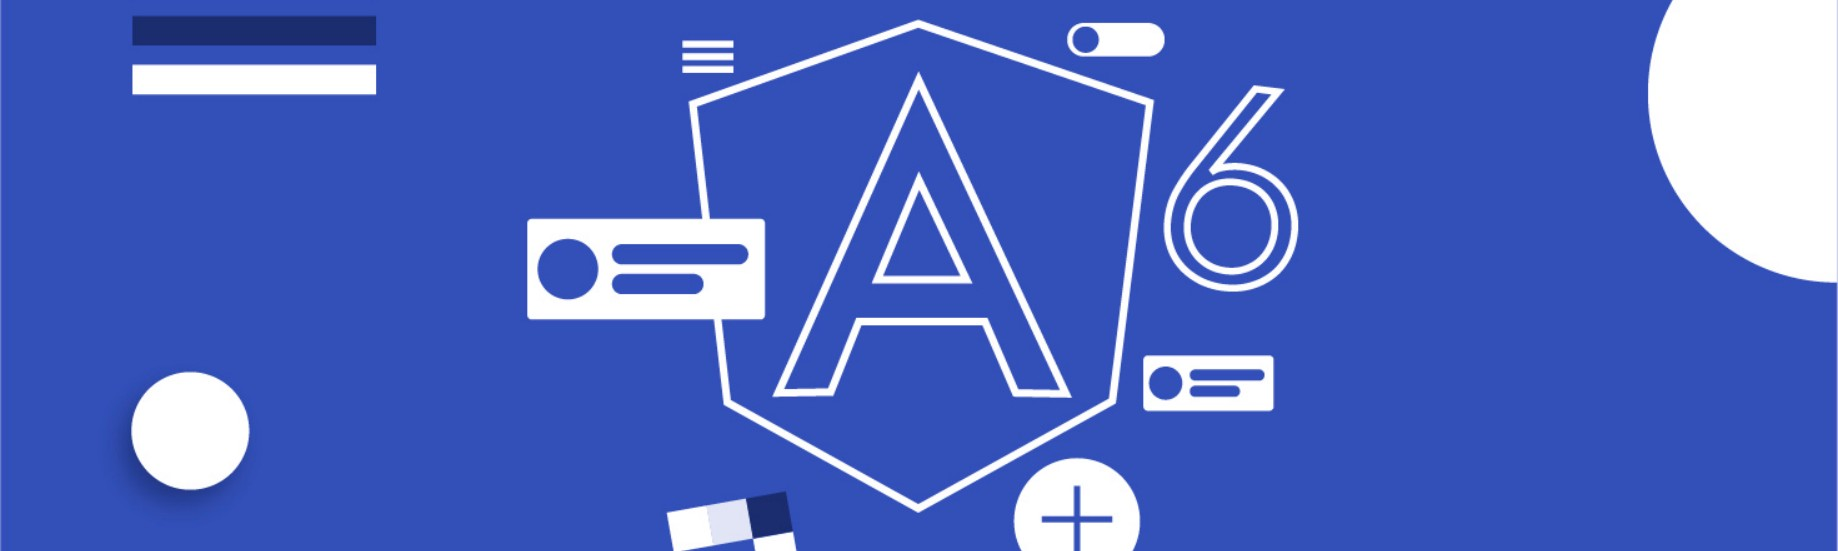 Material Design through the case of Angular 6 app with RxJS